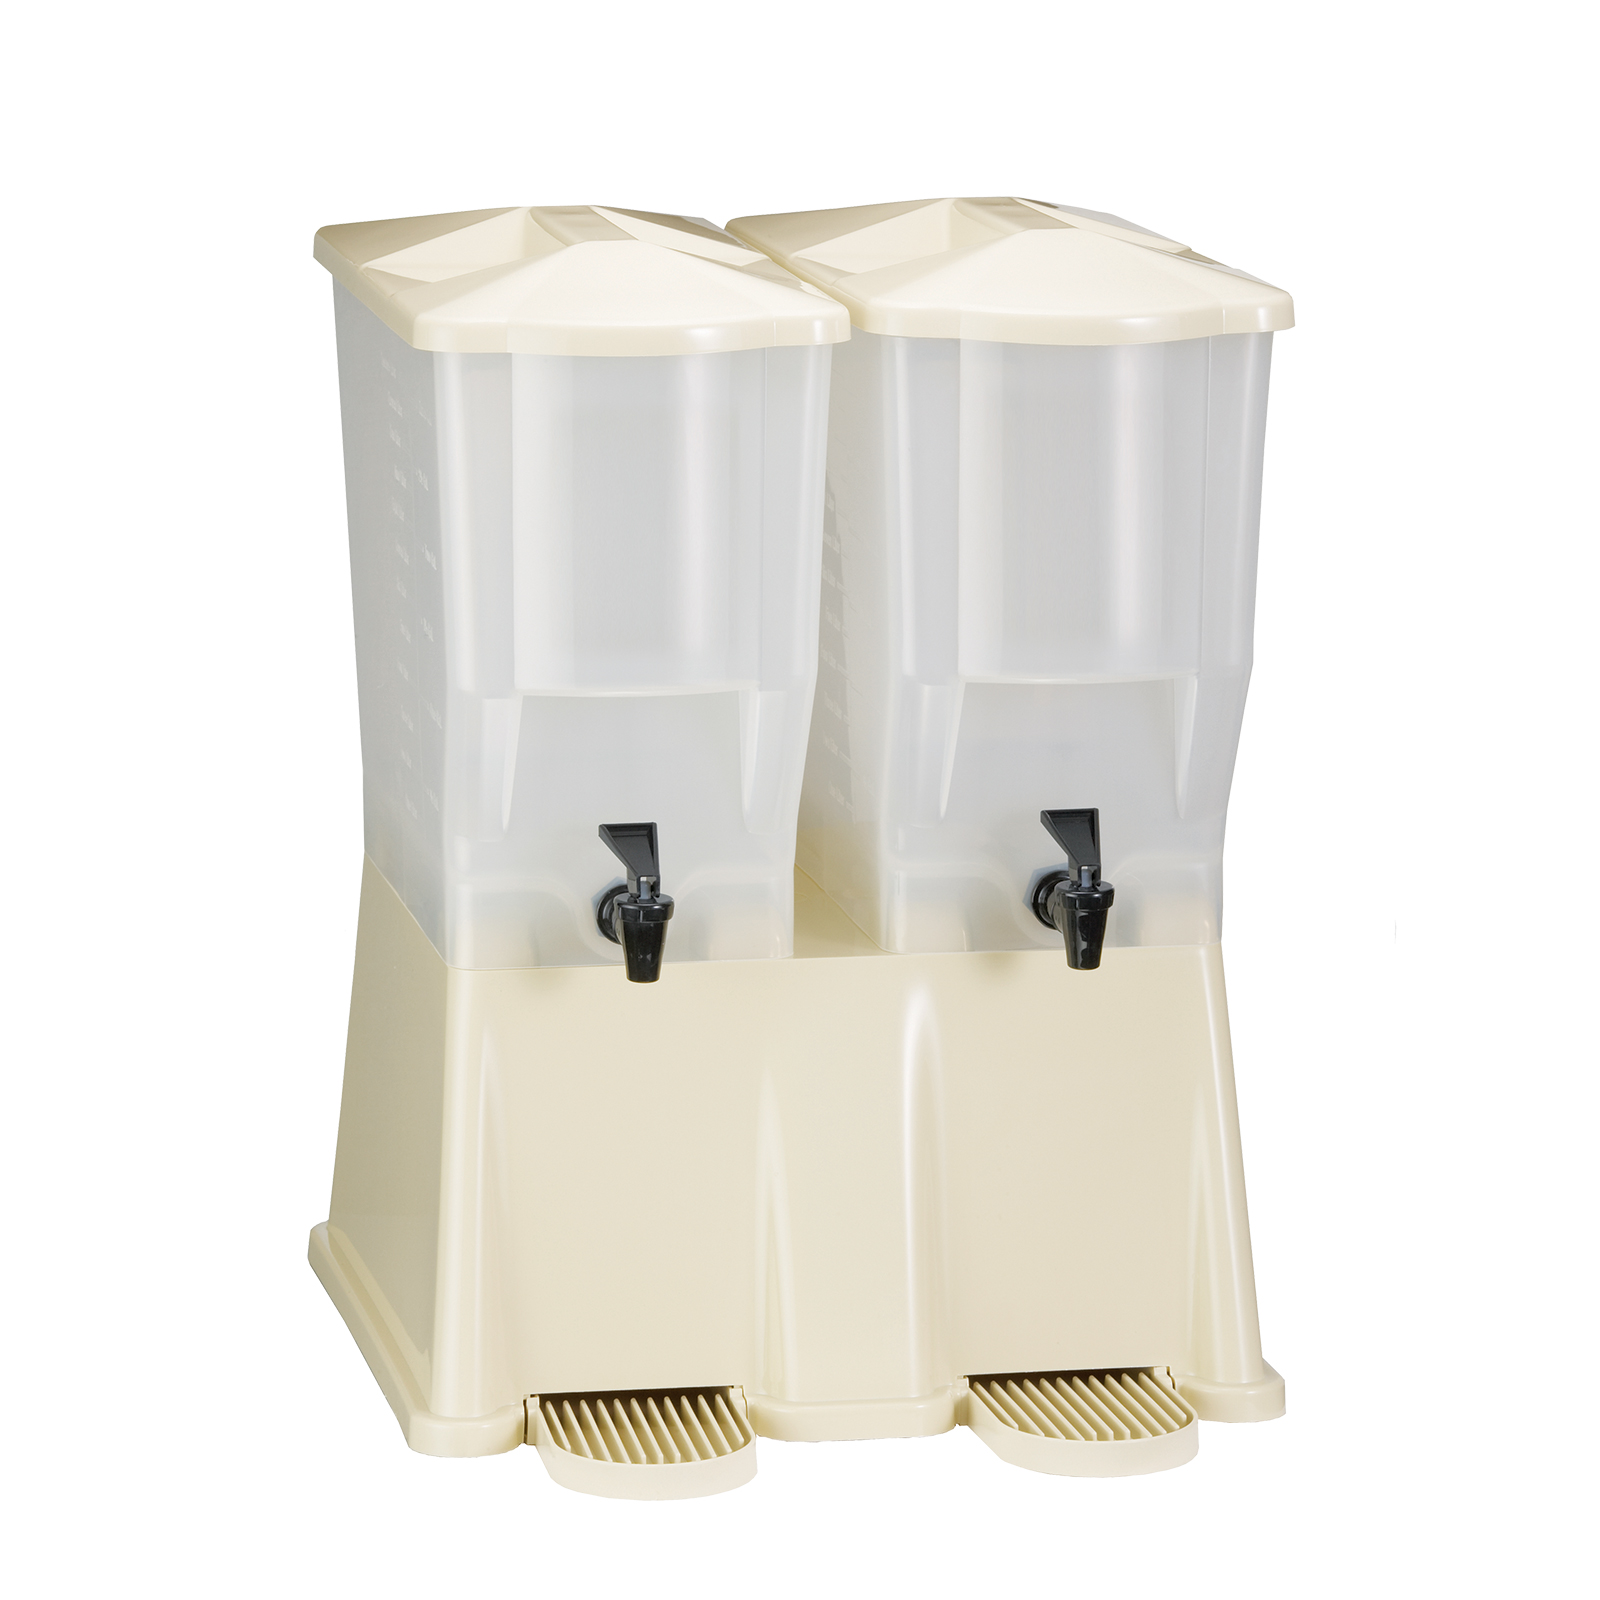 TableCraft Products TW33DP beverage dispenser, non-insulated